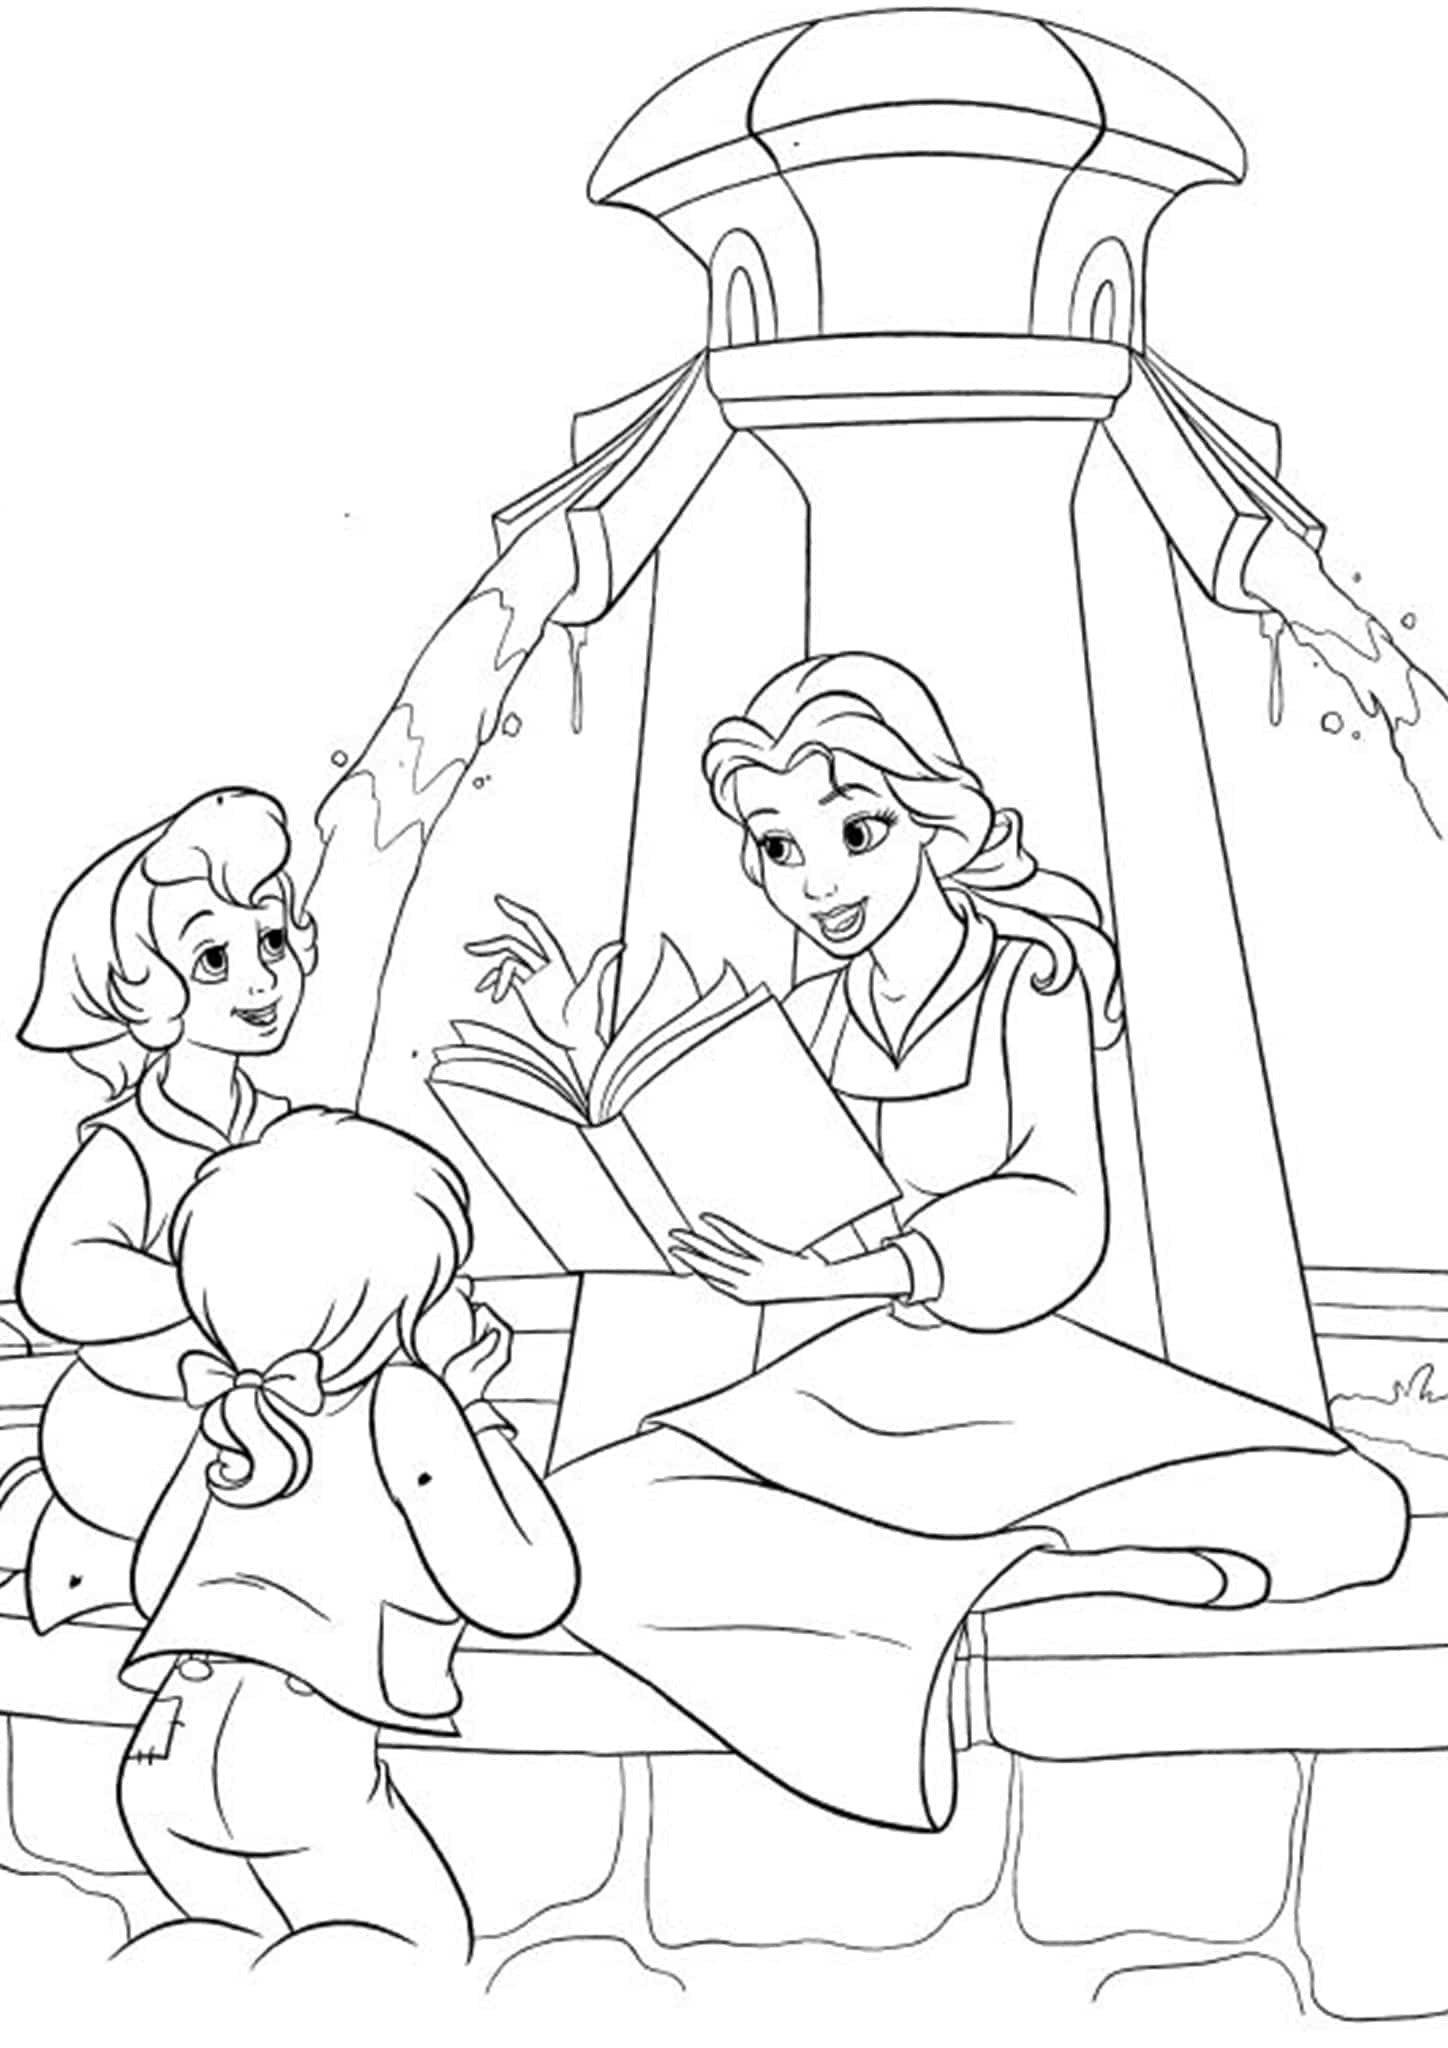 beauty and the beast colouring page coloring pages beauty and the beast coloring home beauty page beast colouring and the